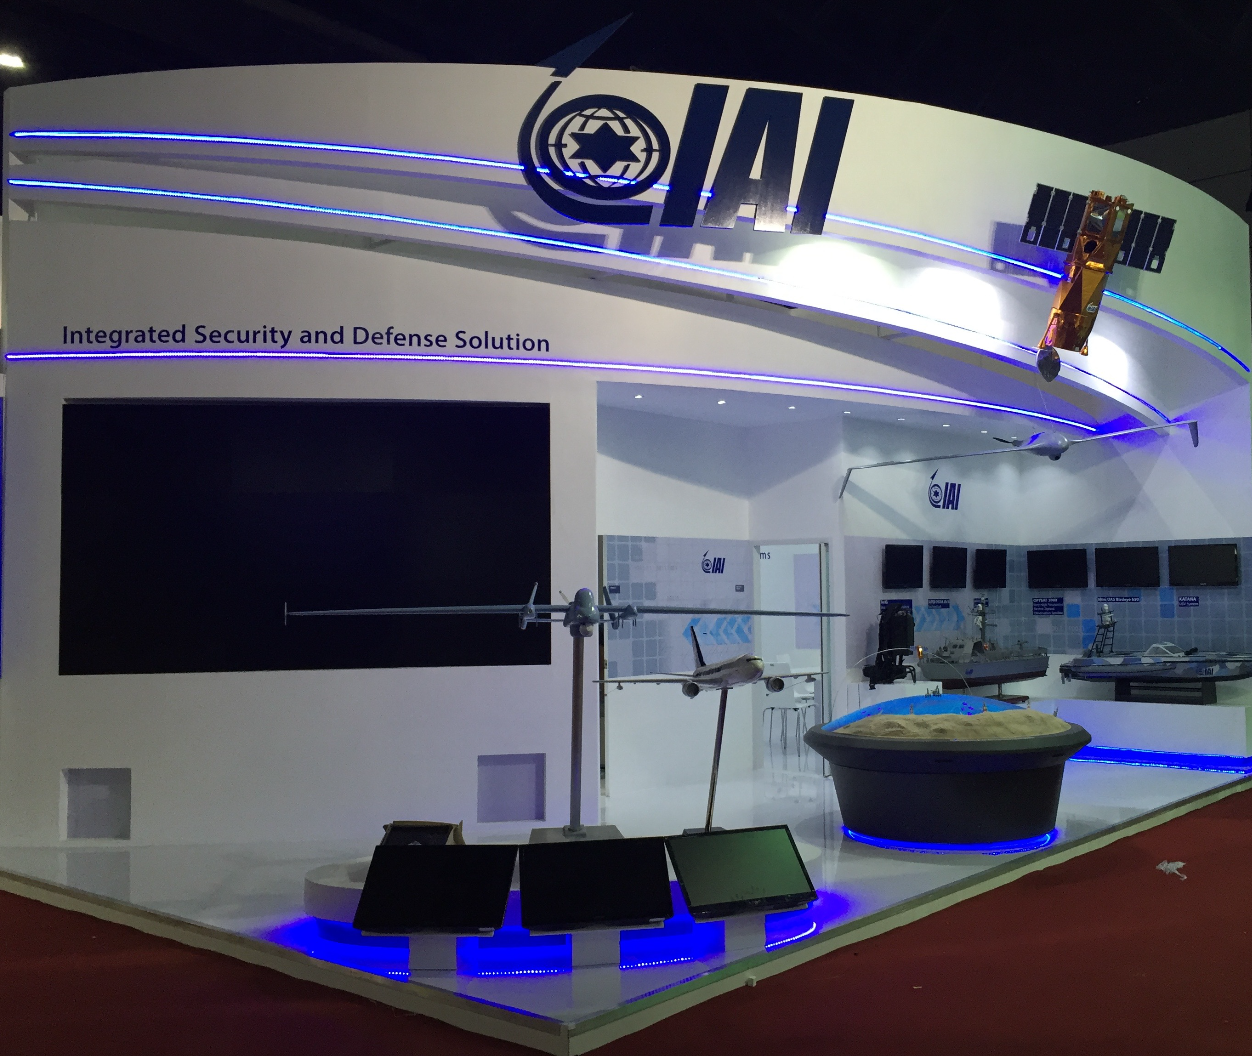 Exhibition Stand Builders Bangkok : World events asia exhibition events management in bangkok thailand